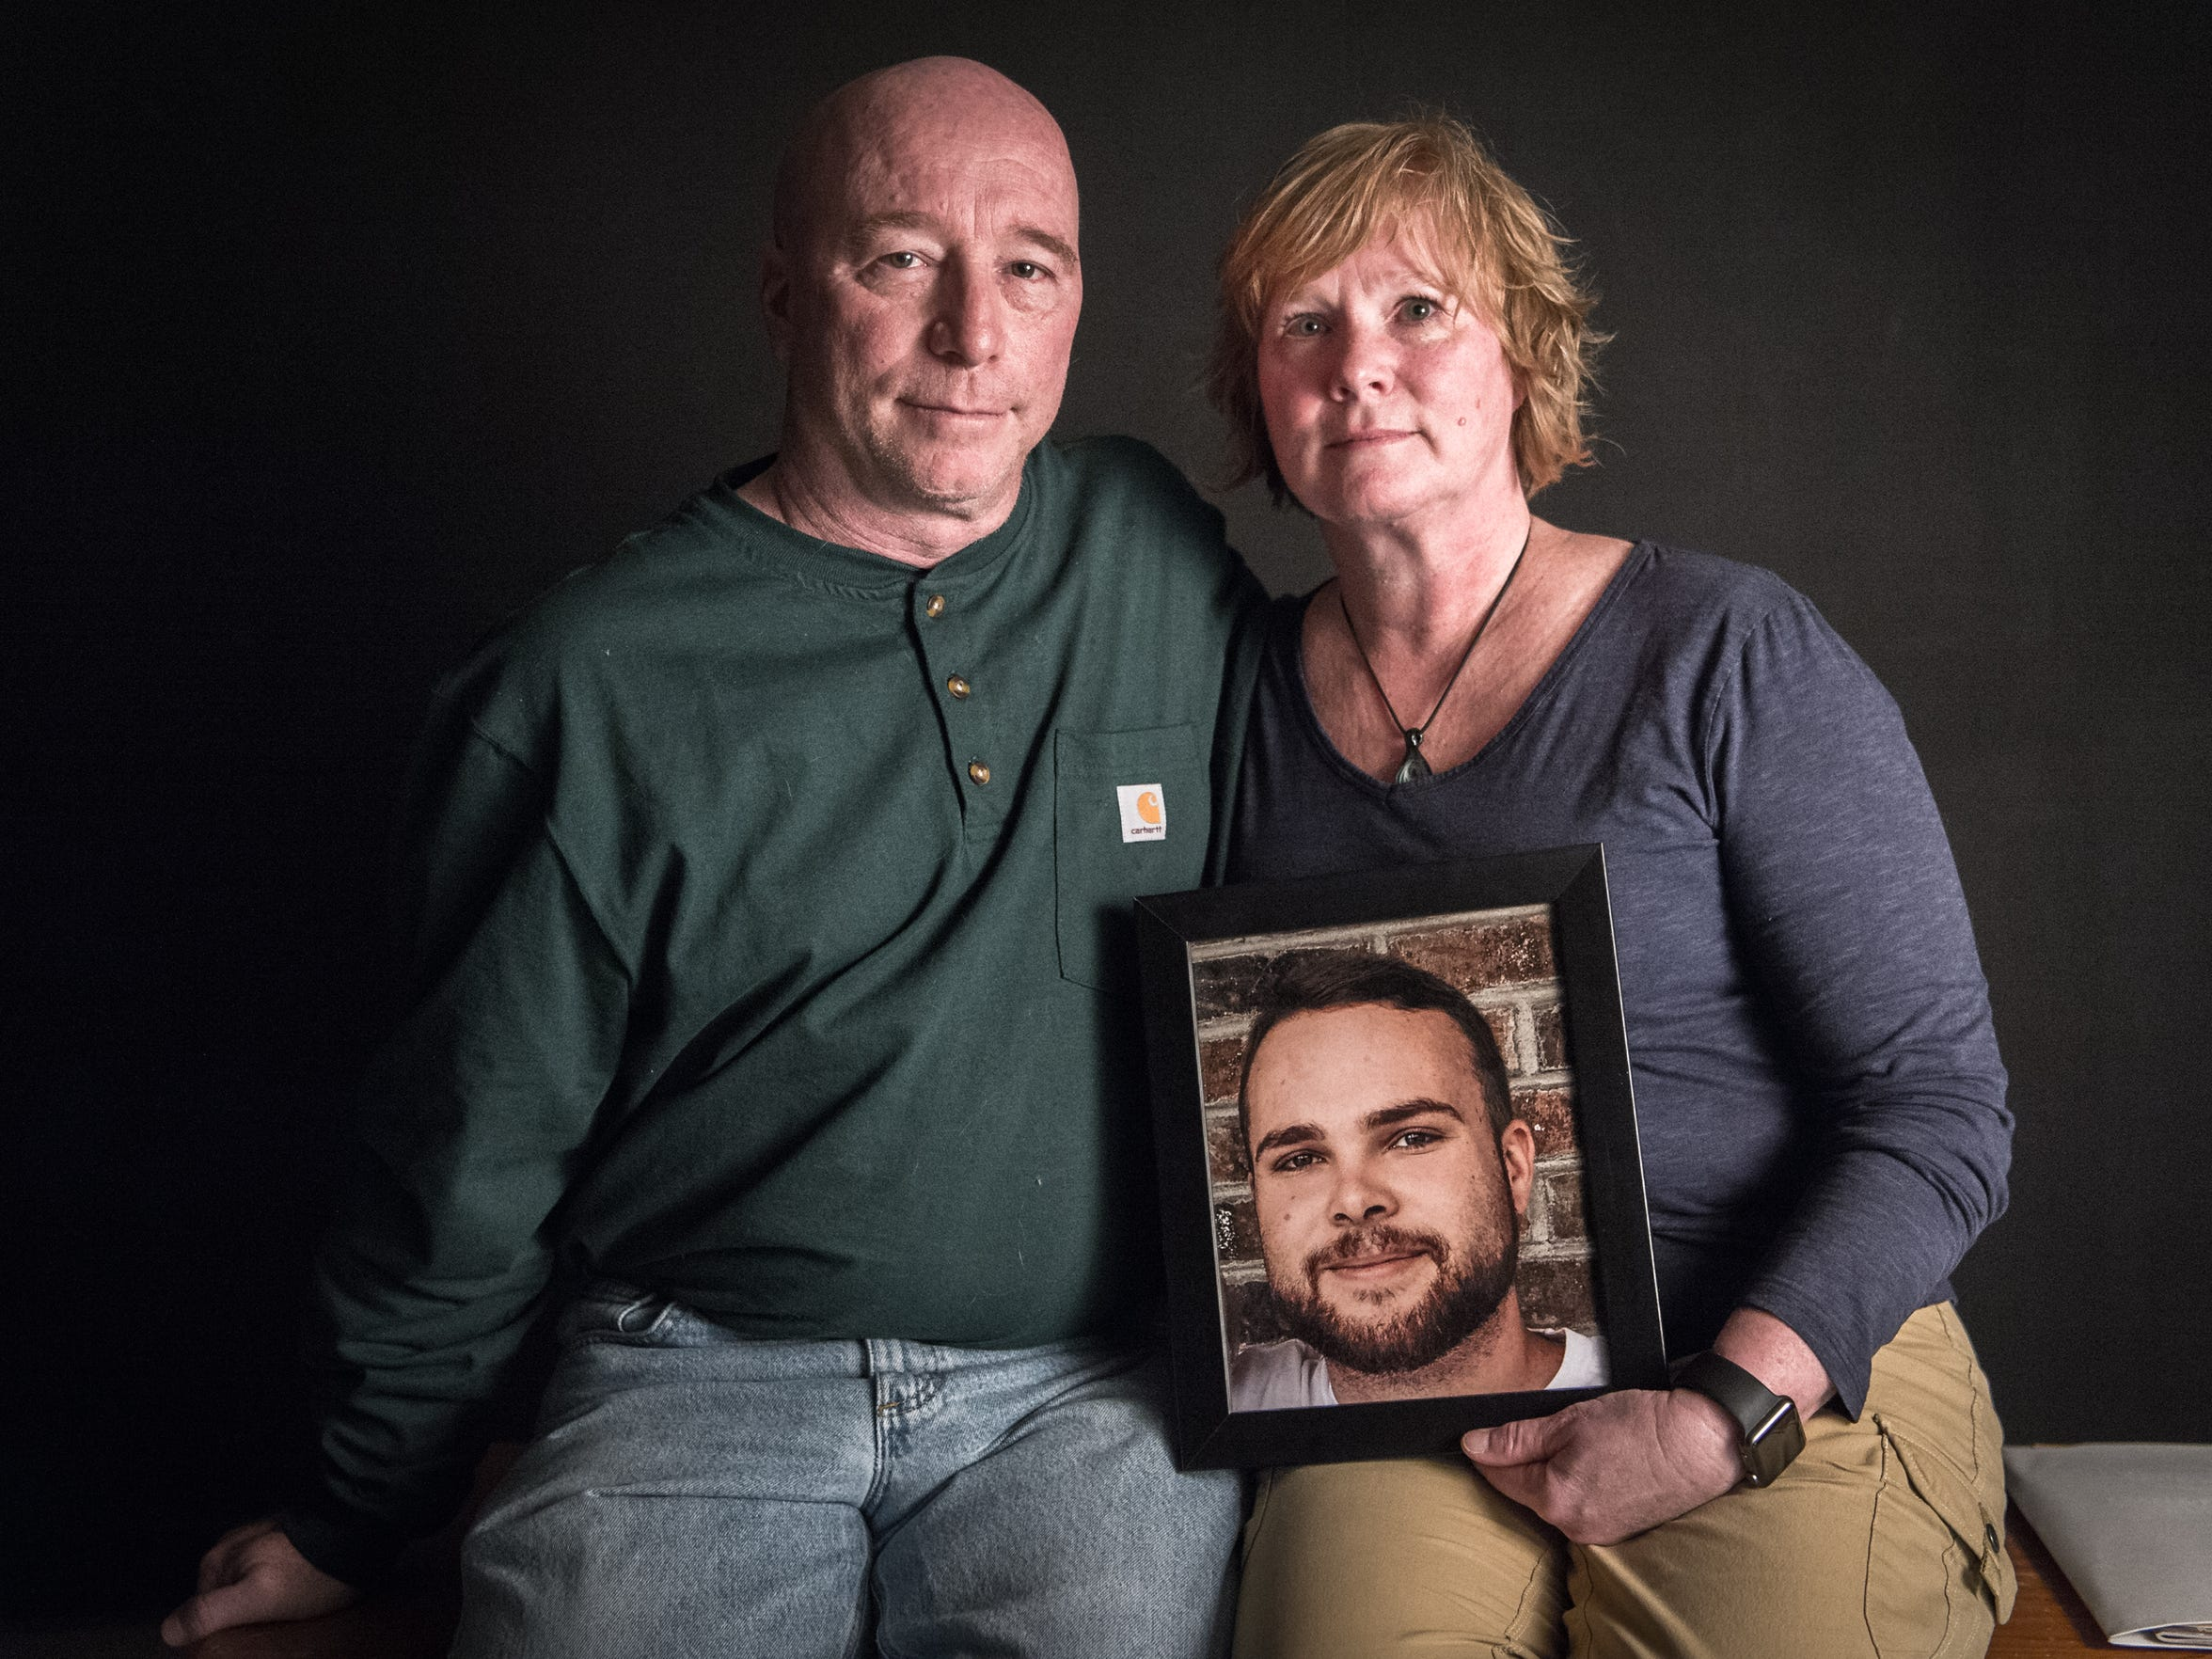 Rob and Sherry Abbot hold a portrait of their son Seth